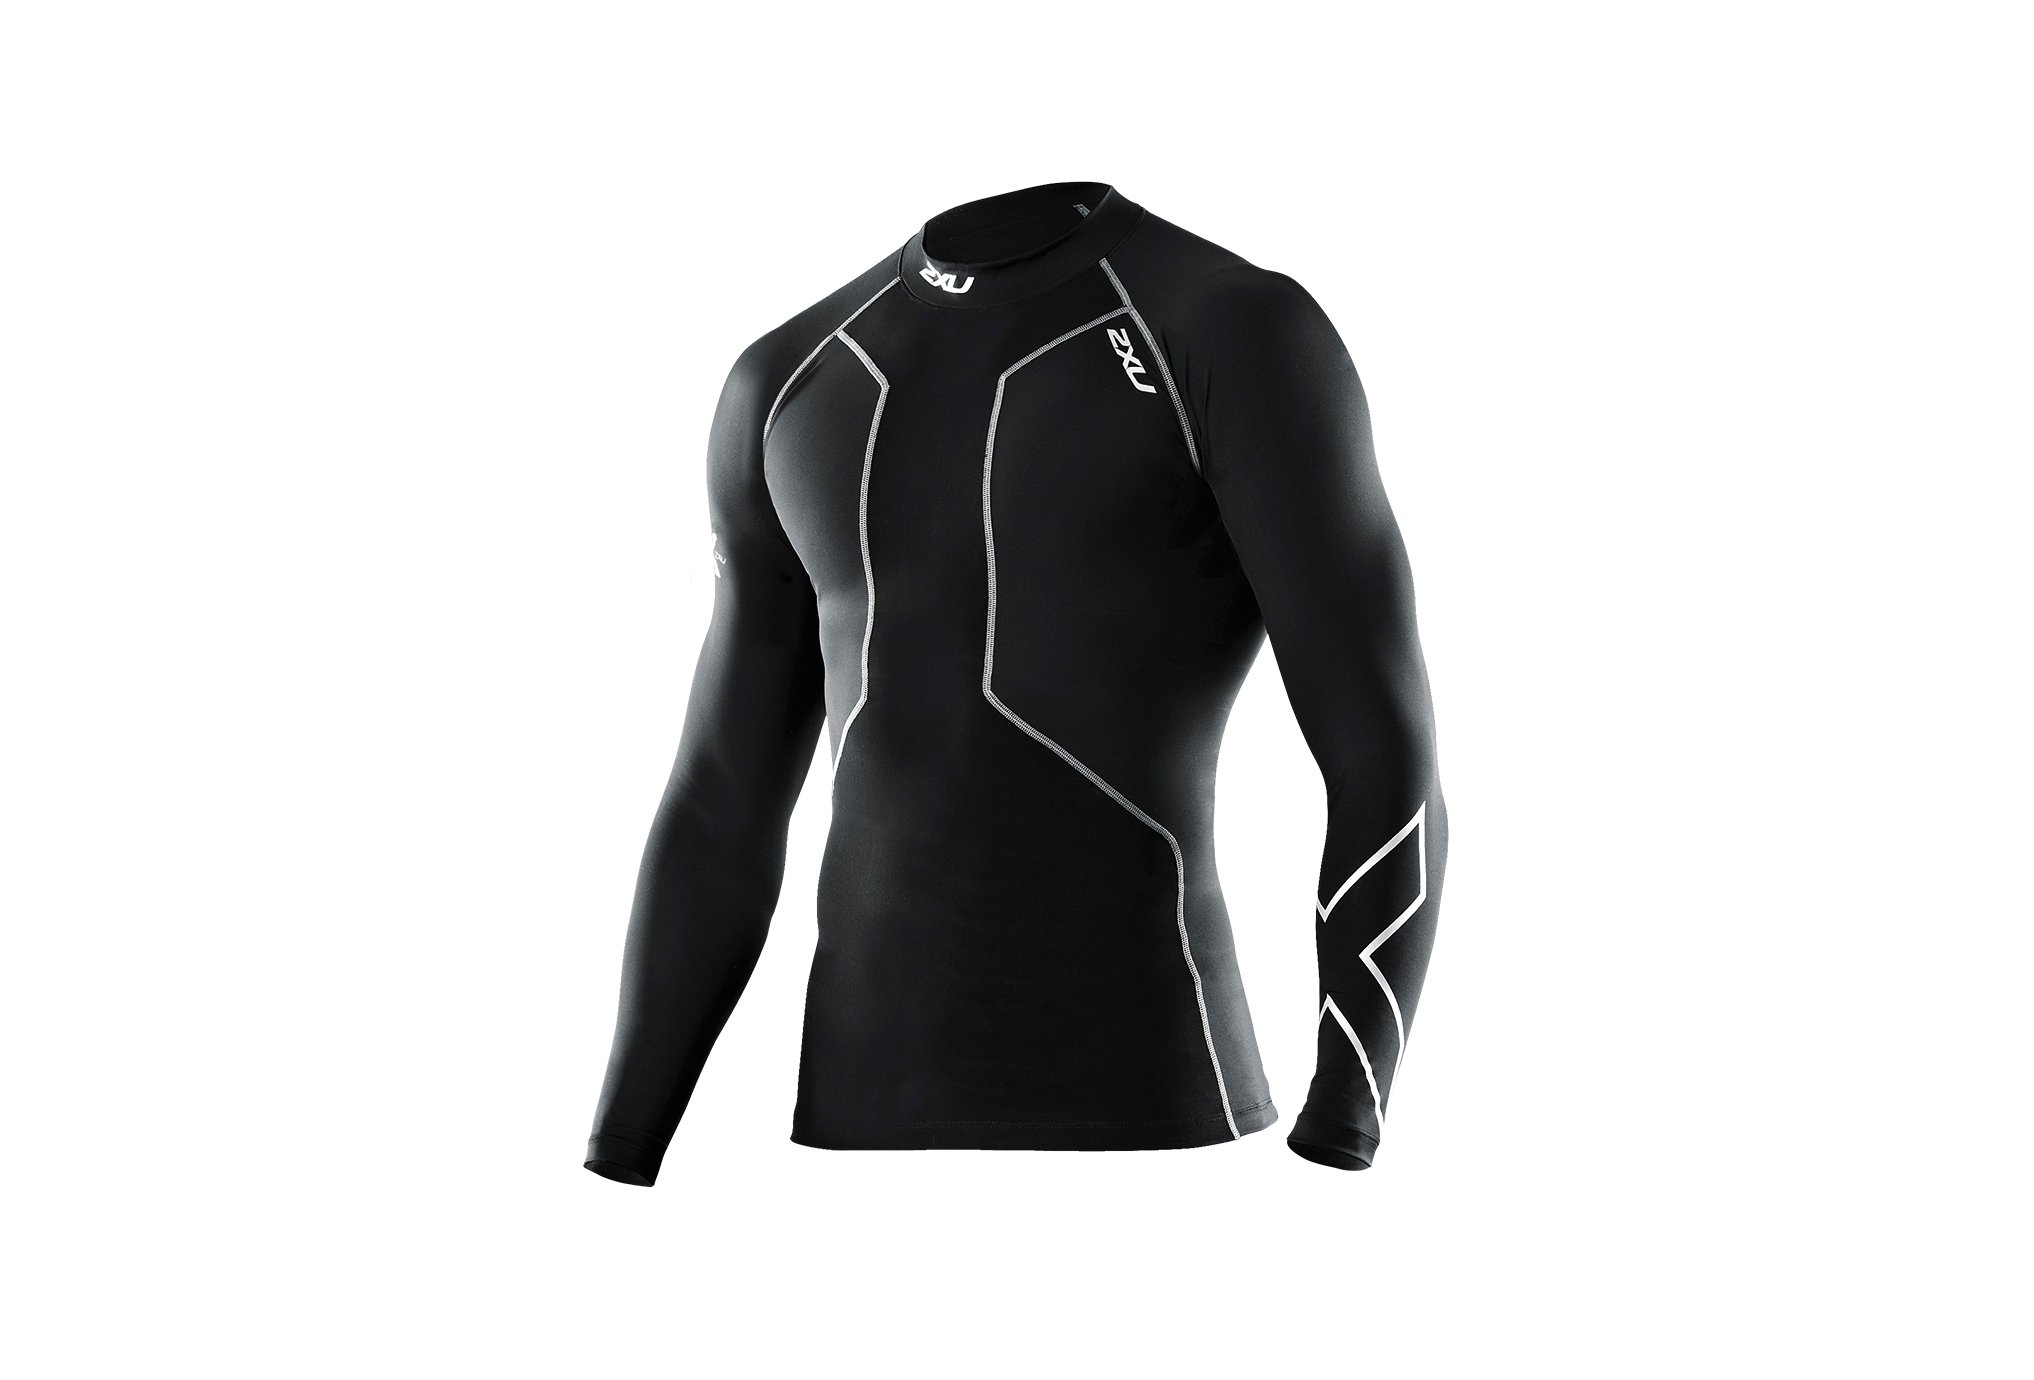 2xu Refresh swim recovery compression m diététique vêtements homme